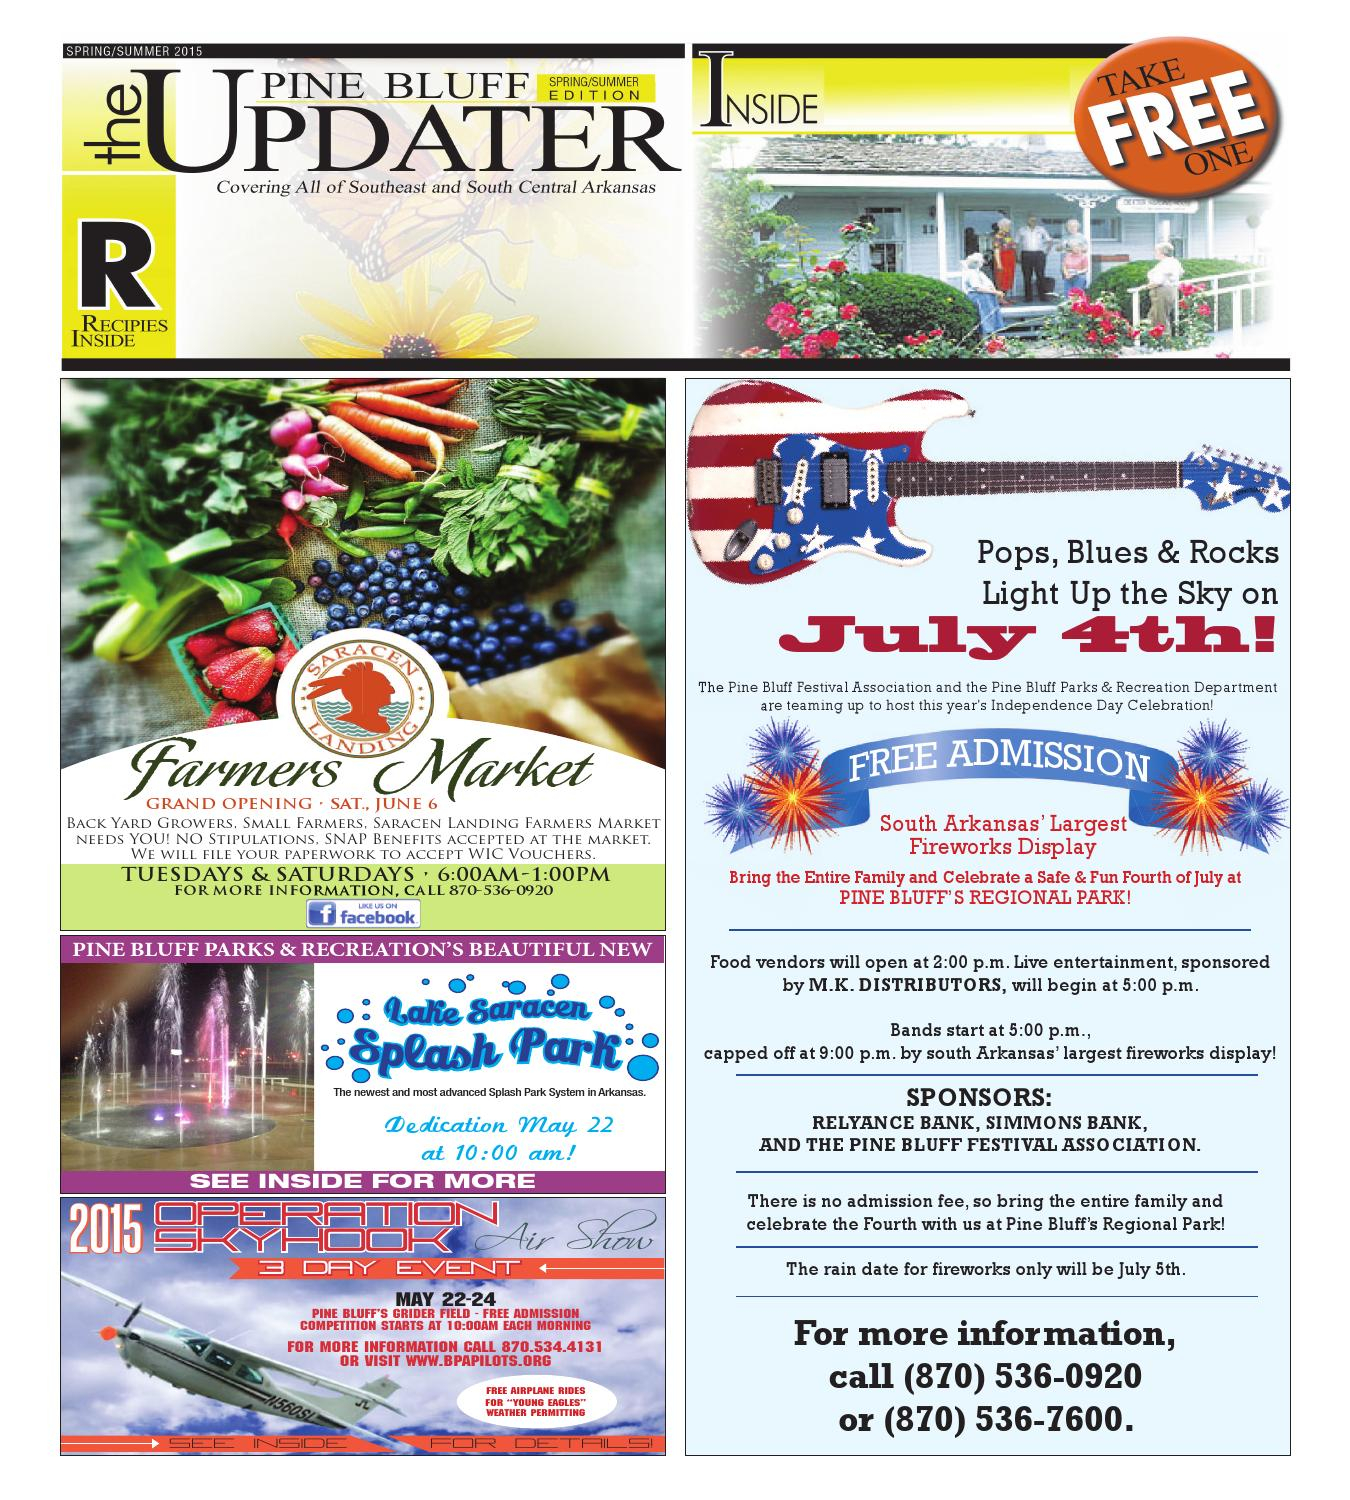 Pine Bluff Updater Spring Summer 2015The Updater – Issuu Intended For When Is Spring Break 2020 In Pine Bluff